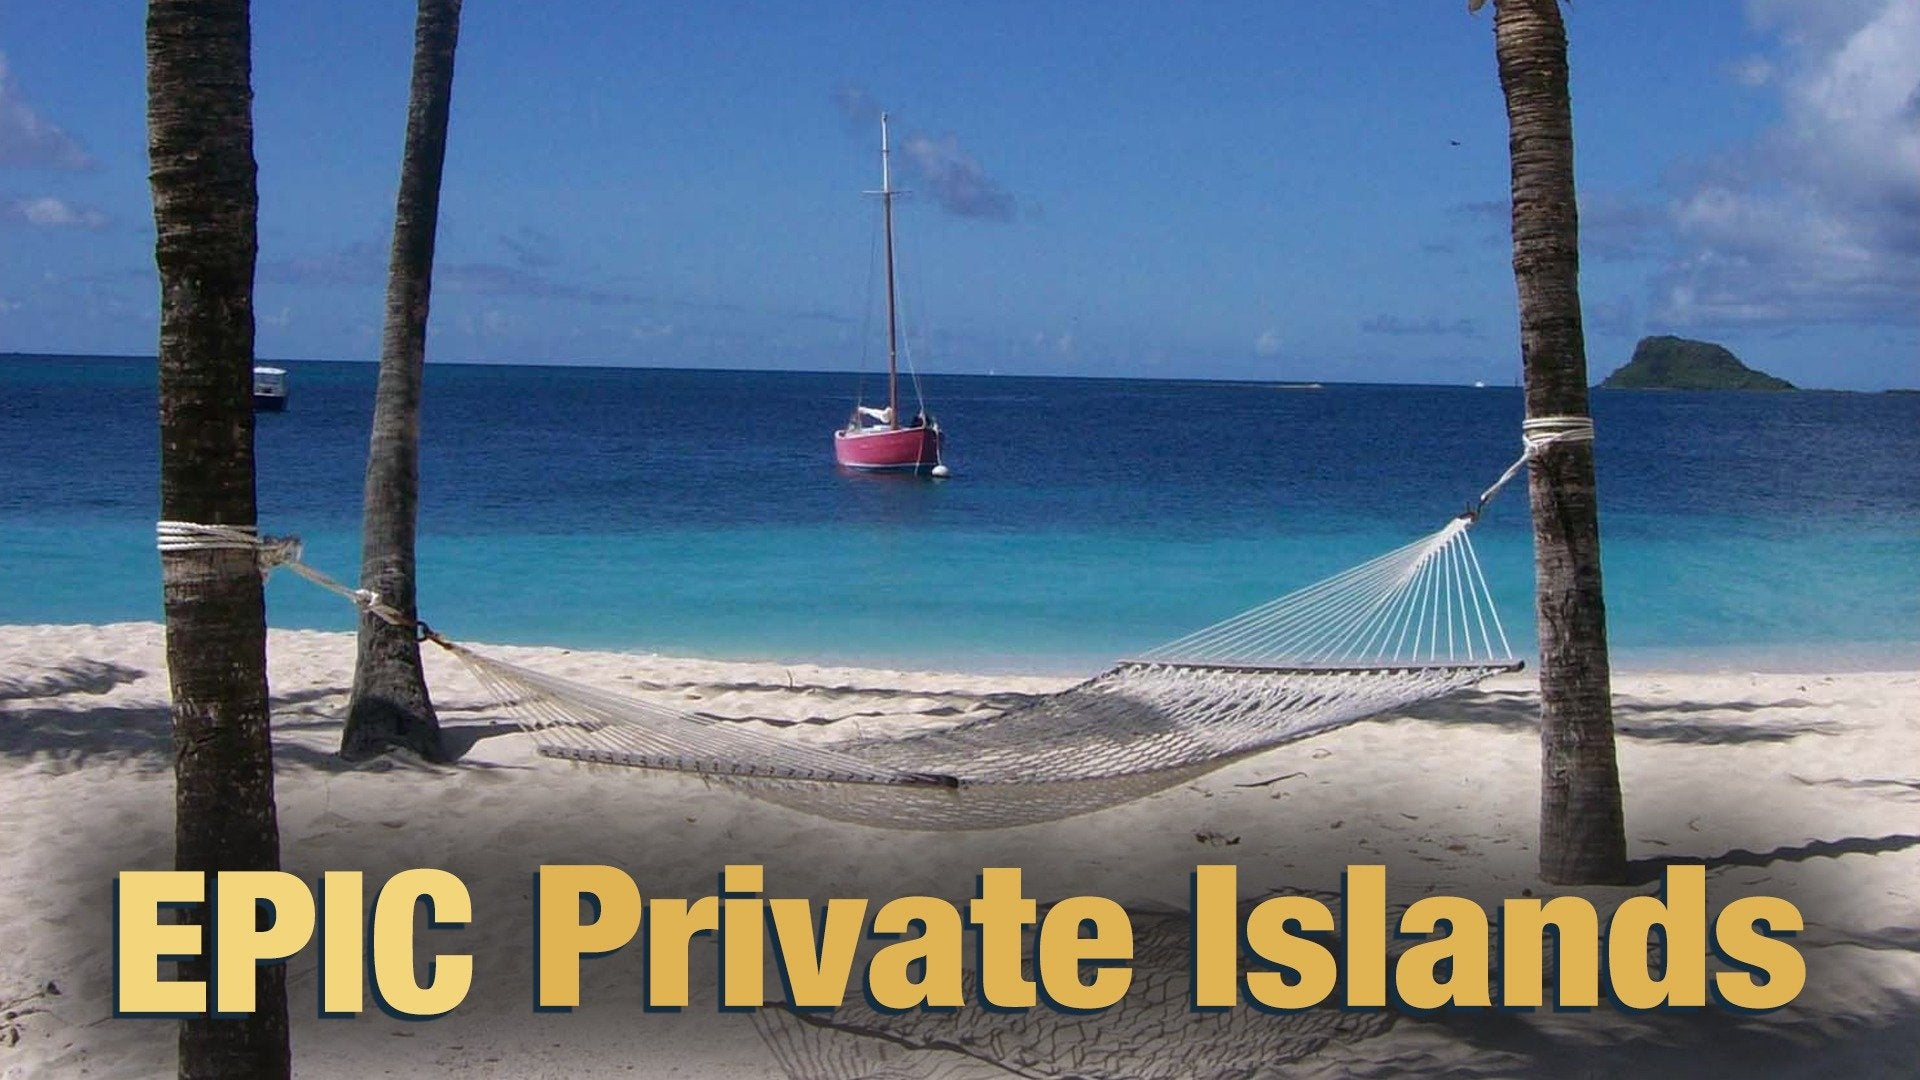 Epic Private Islands